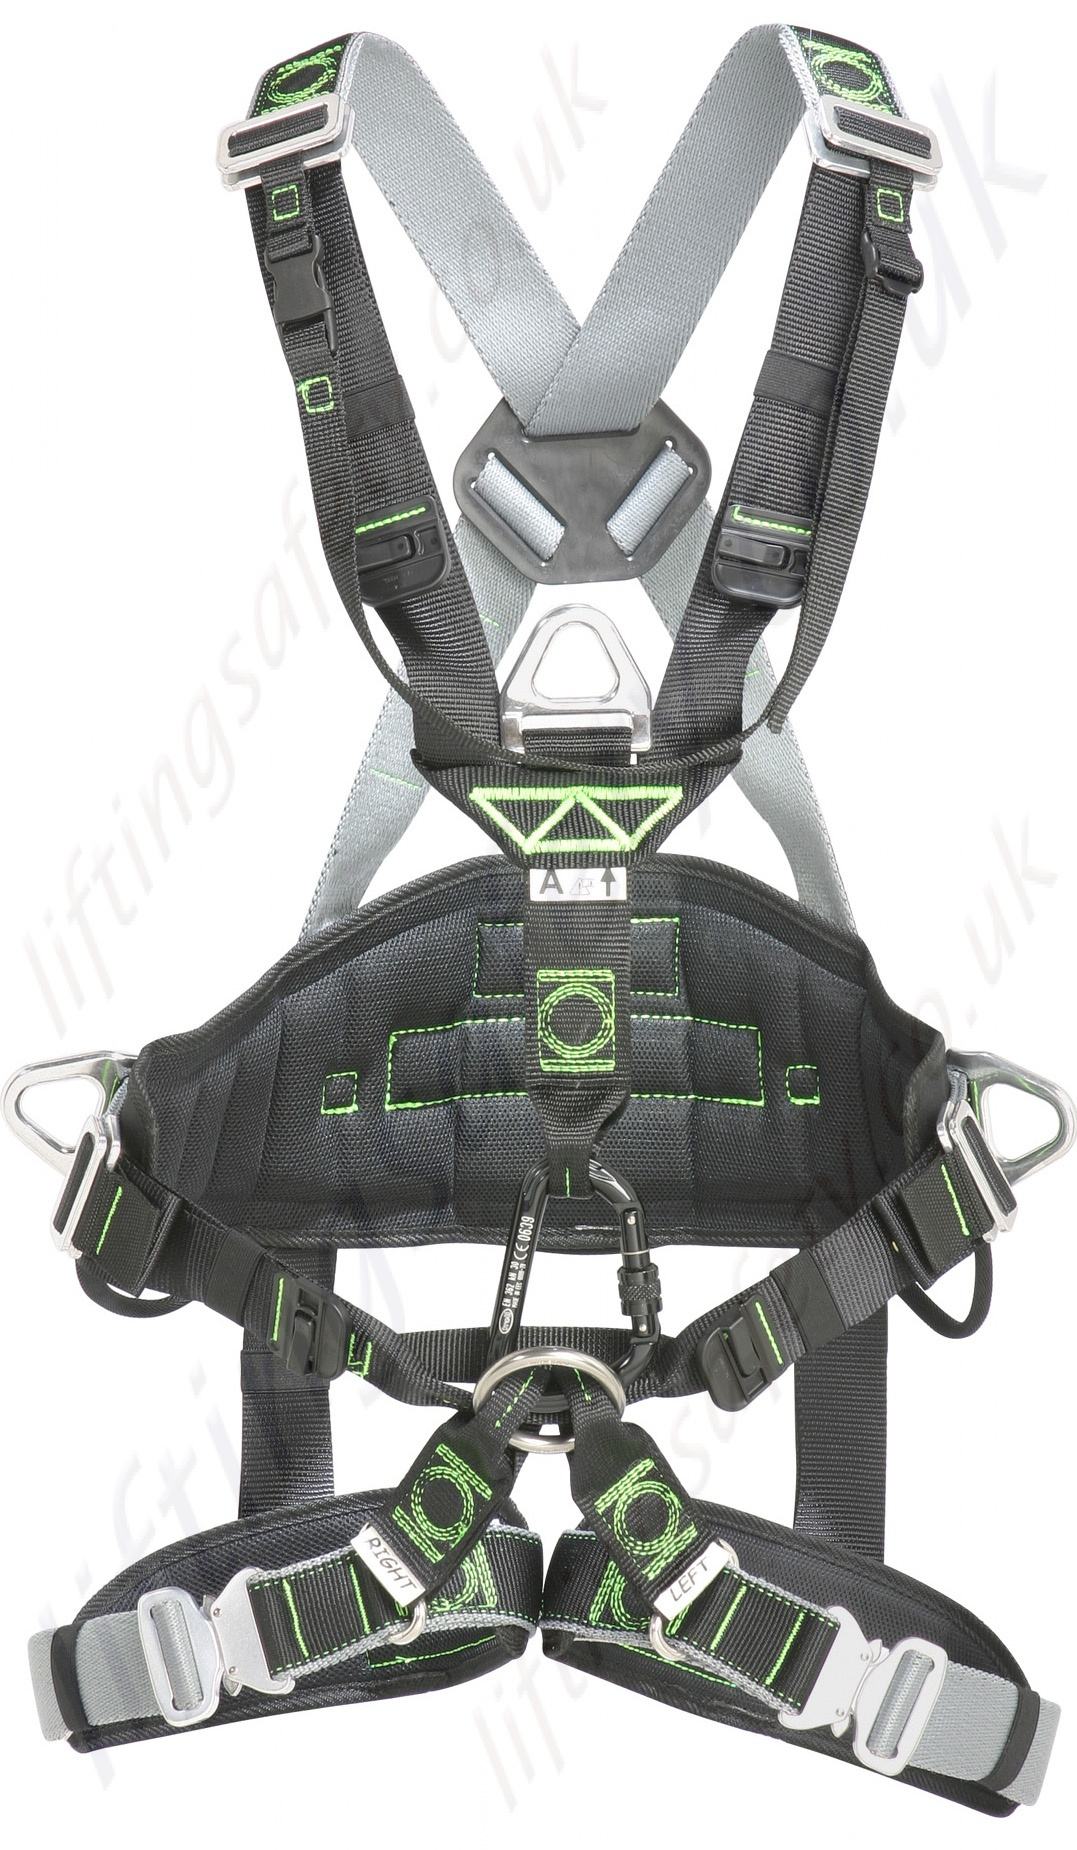 Miller Ropax Rope Access Harness